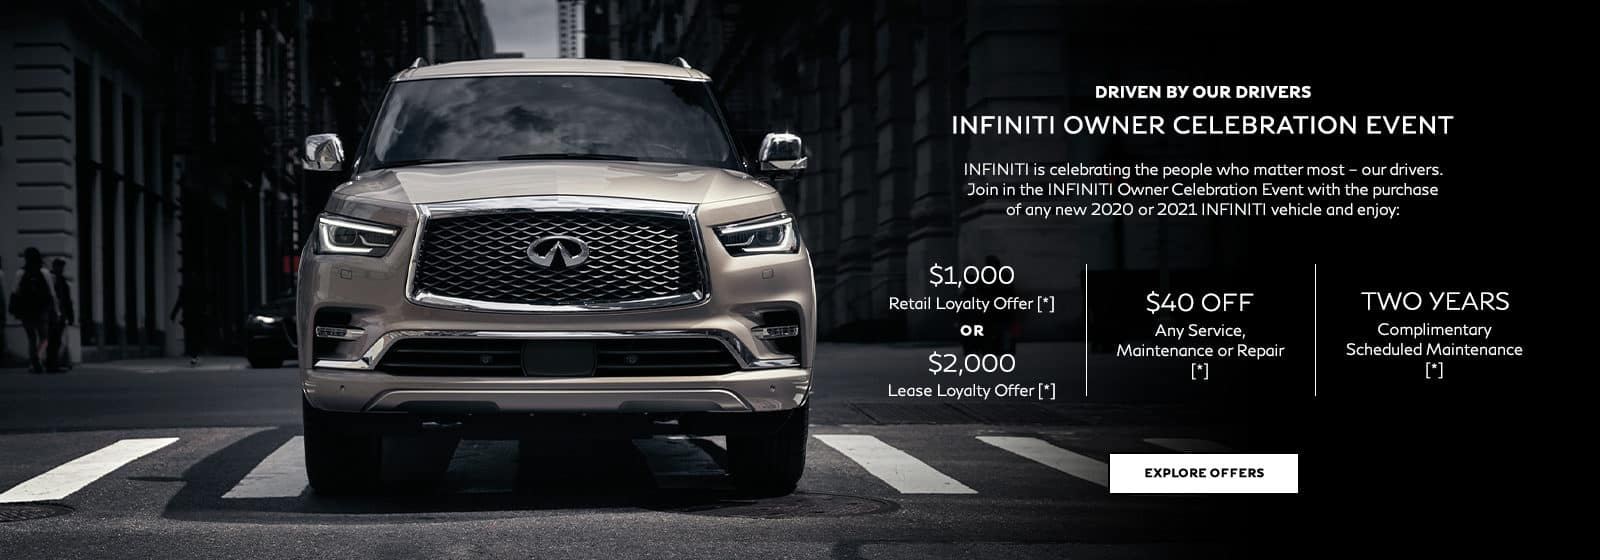 Driven by our drivers. INFINITI Owner Celebration Event. INFINITI is celebrating the people who matter most – our drivers. Join in the INFINITI Owner Celebration Event with the purchase of any new 2020 or 2021 INFINITI vehicle and enjoy these offers: $1,000 Retail Loyalty Offer OR $2,000 Lease Loyalty Offer, $40 off any service, maintenance or repair OR 50% off oil and filter change complete with a multi-point inspection, plus 2 years complimentary scheduled maintenance.